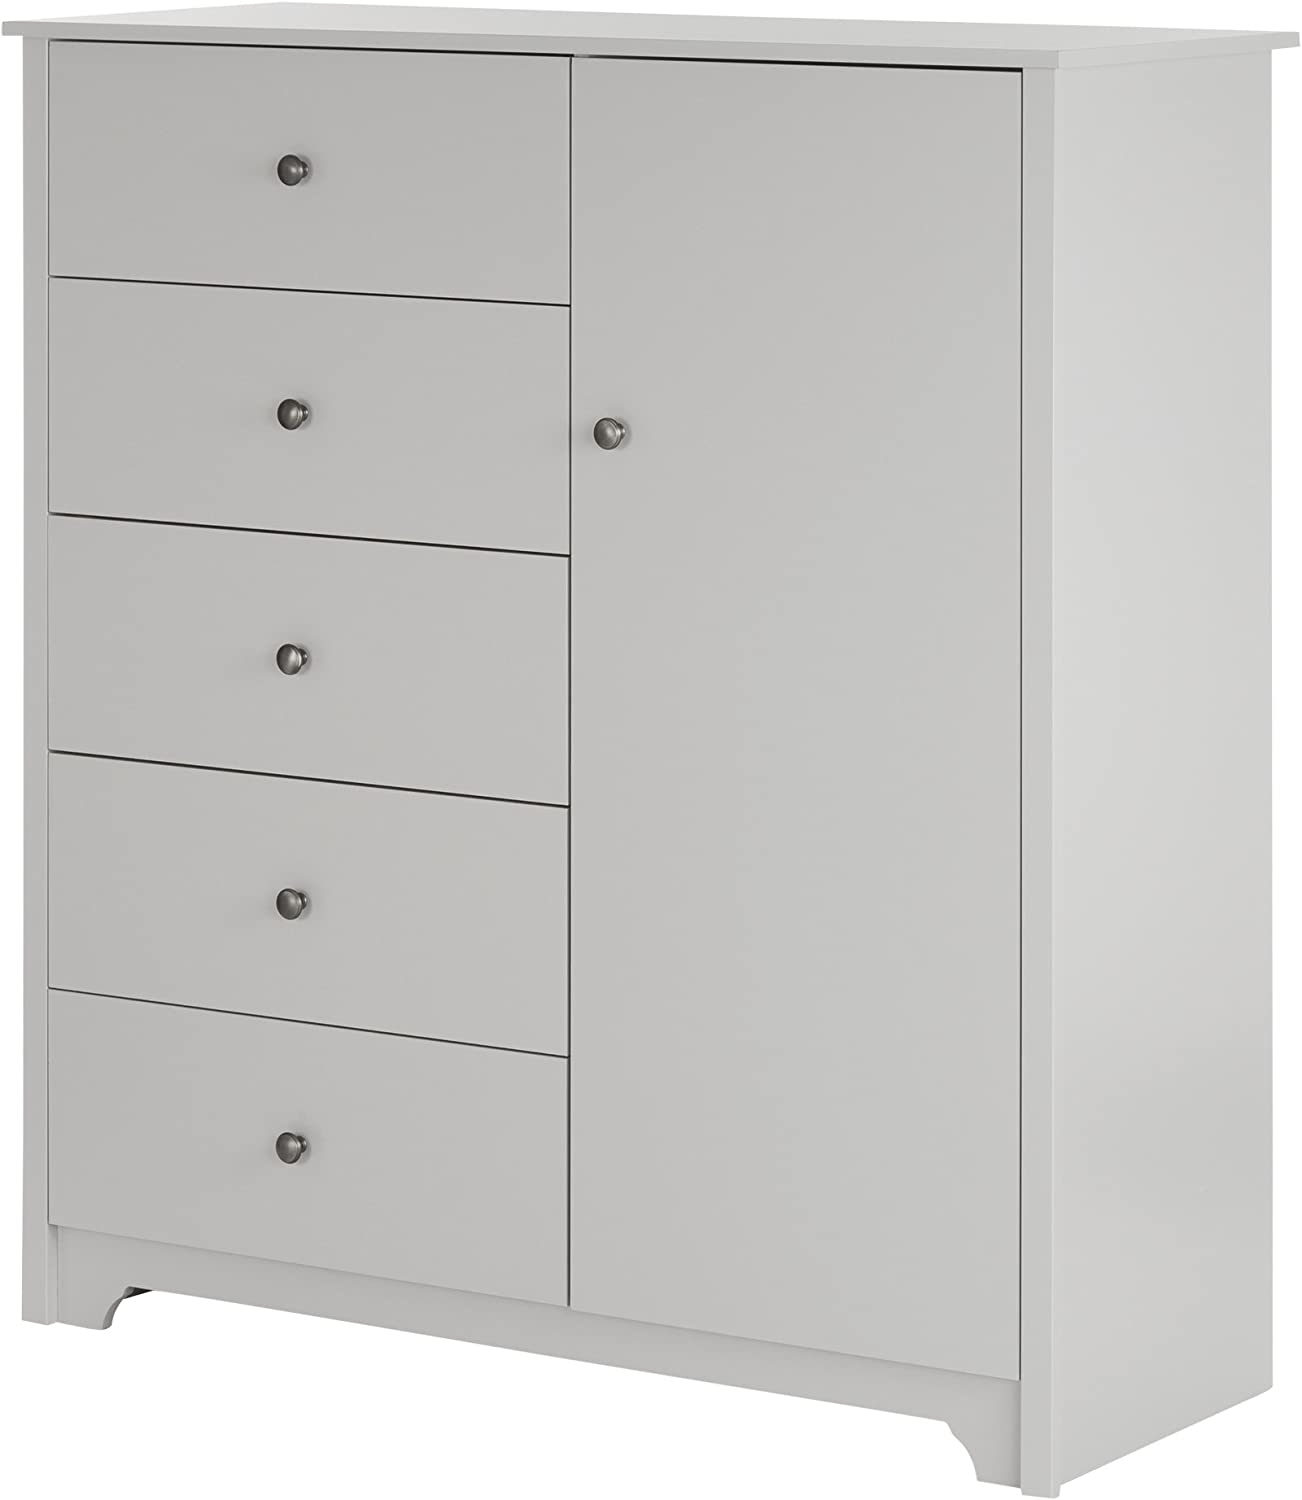 South Shore Vito Door Chest with 5 Drawers and Adjustable Shelves, Soft Gray